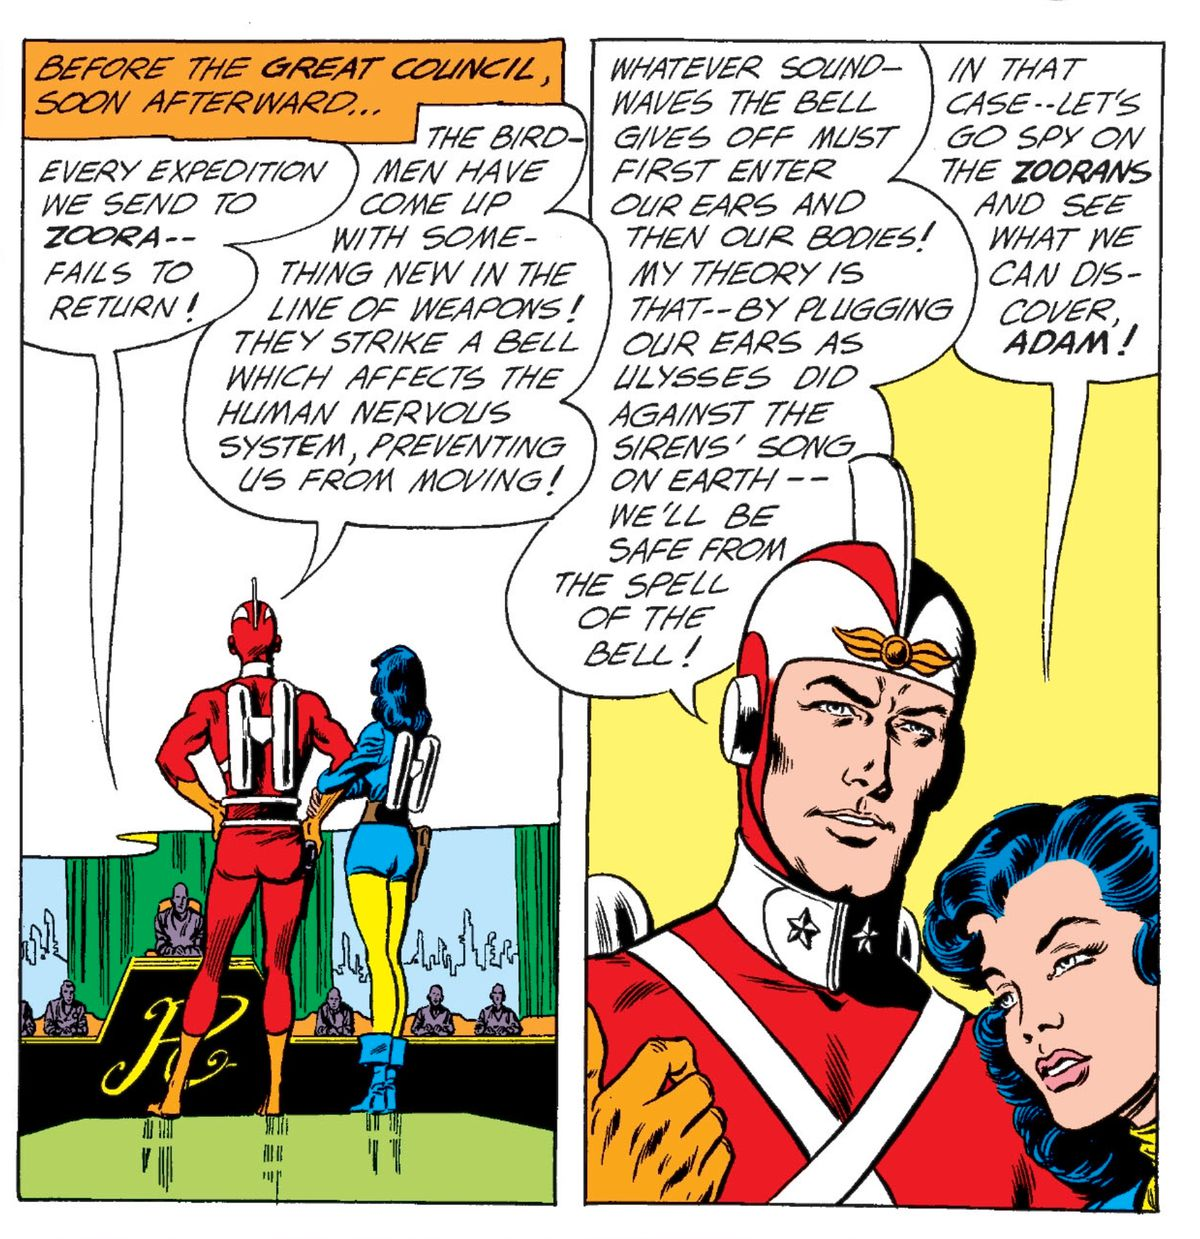 Adam Strange and Alanna confer with the Great Council of Rann on what to do about some bird-men who have learned the power of mind control, in Mystery in Space #75, DC Comics (1962).